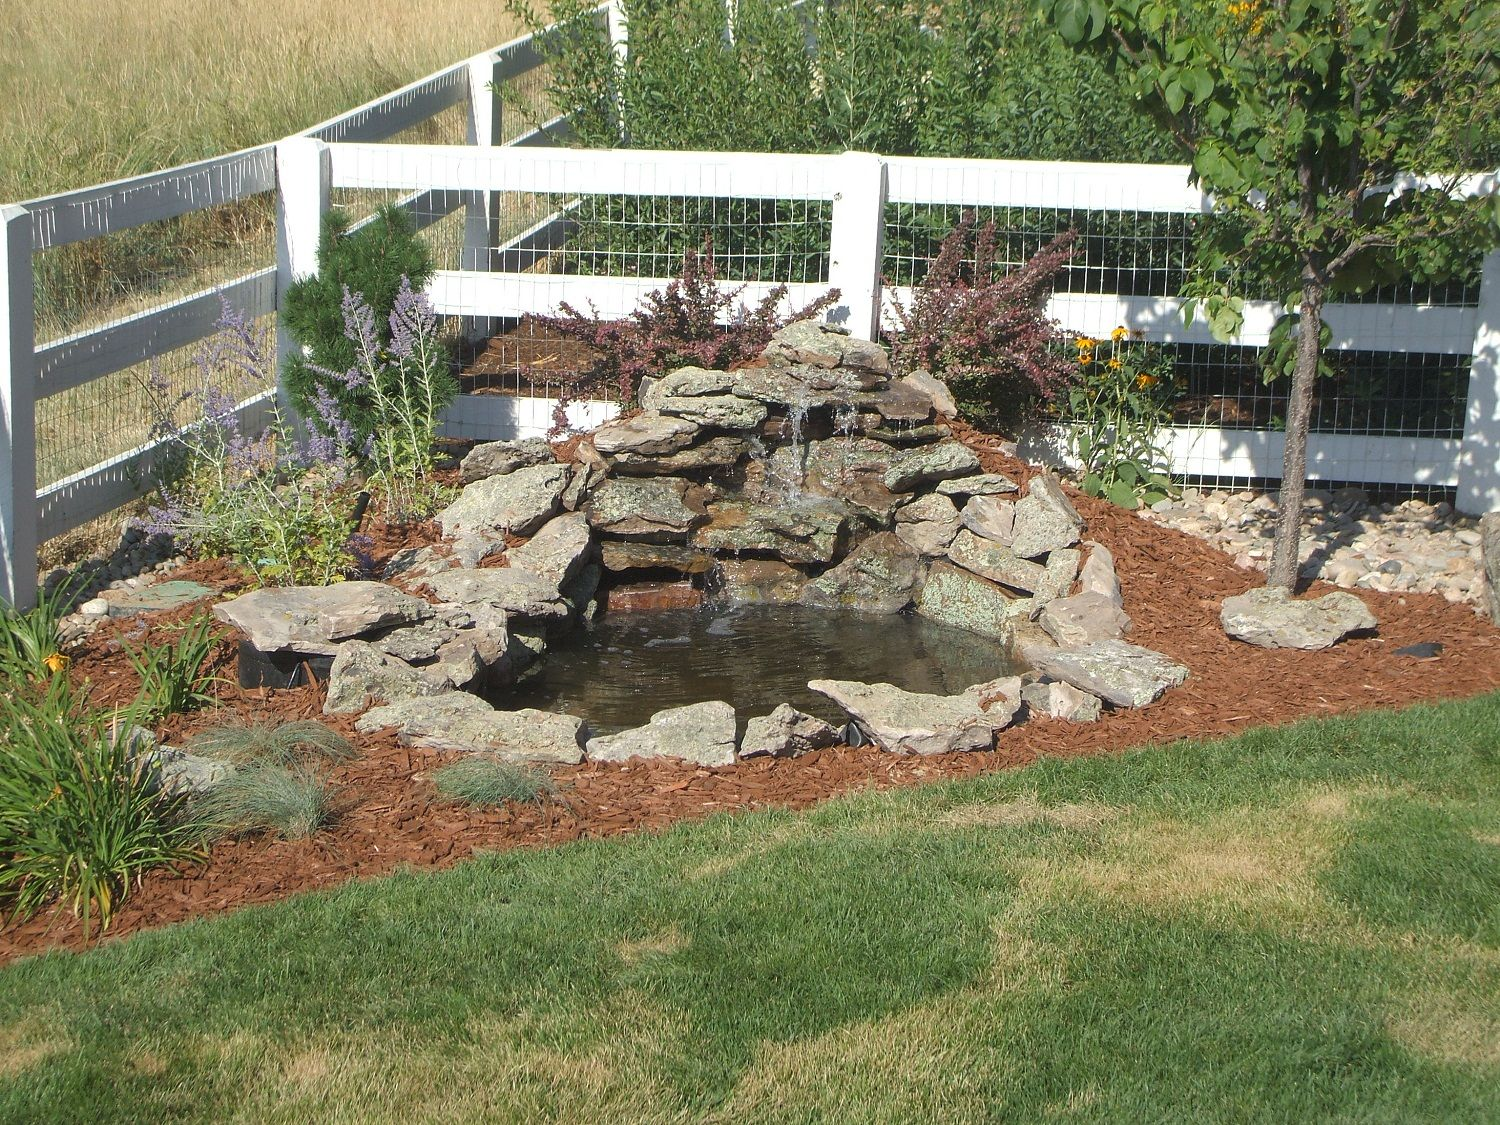 Garden and patio small diy ponds with waterfall and stone for Diy garden pond